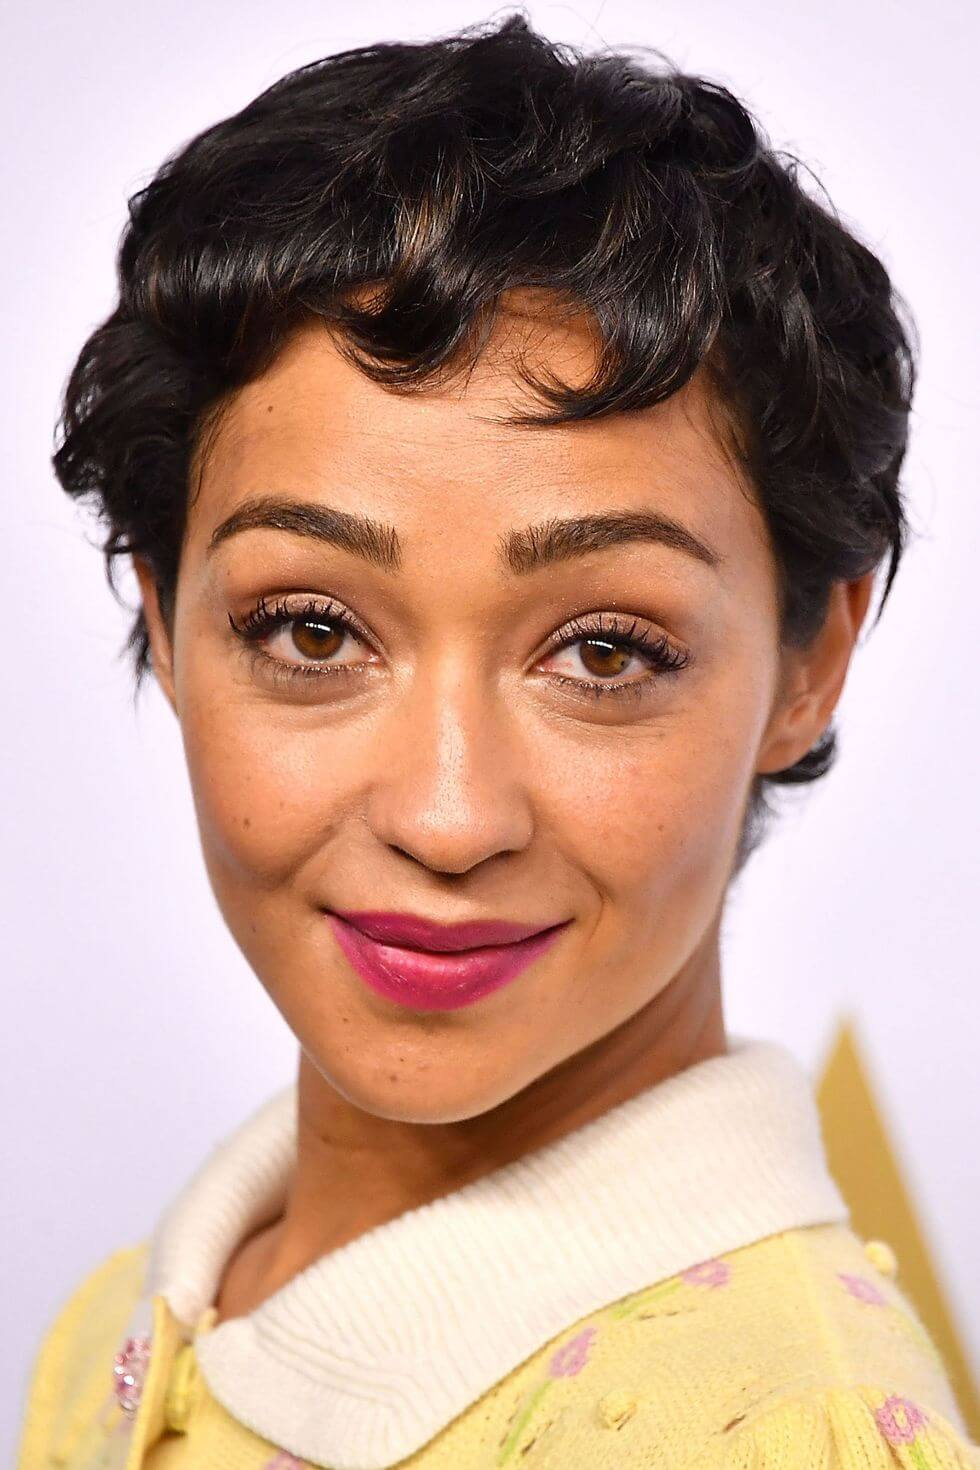 Short Pixie Haircuts for Naturally Curly Hair - 30+